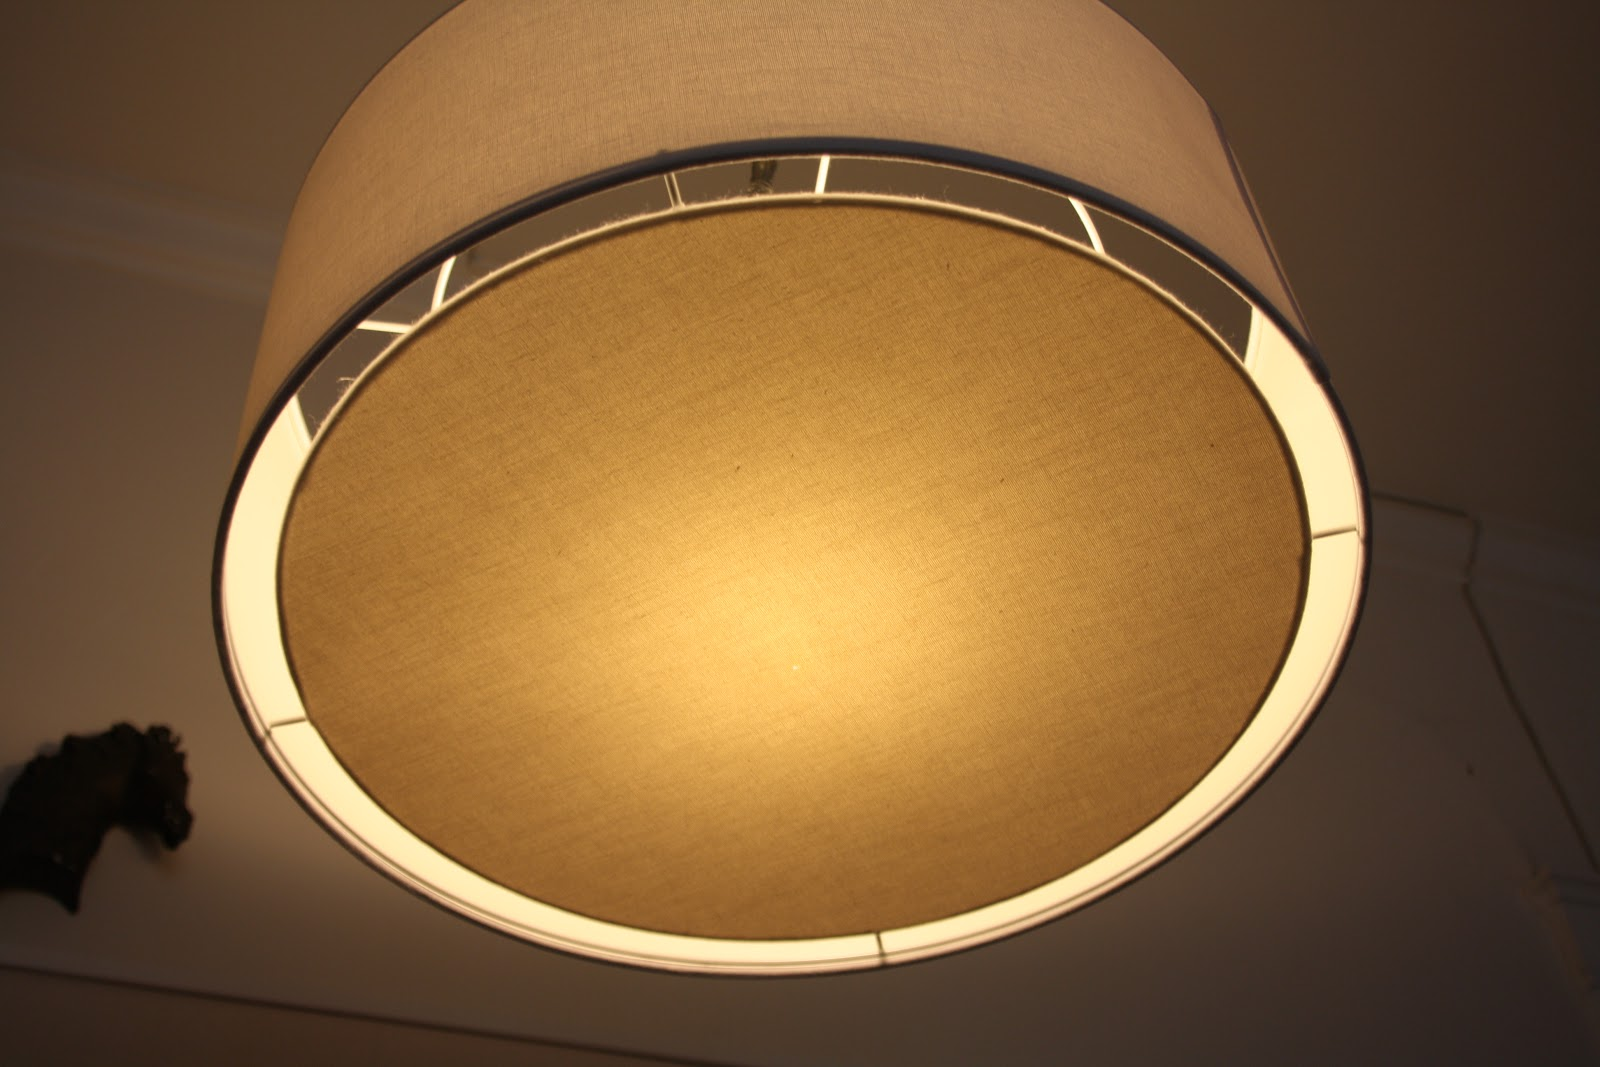 the diffuser on our cb2 pendant lamp